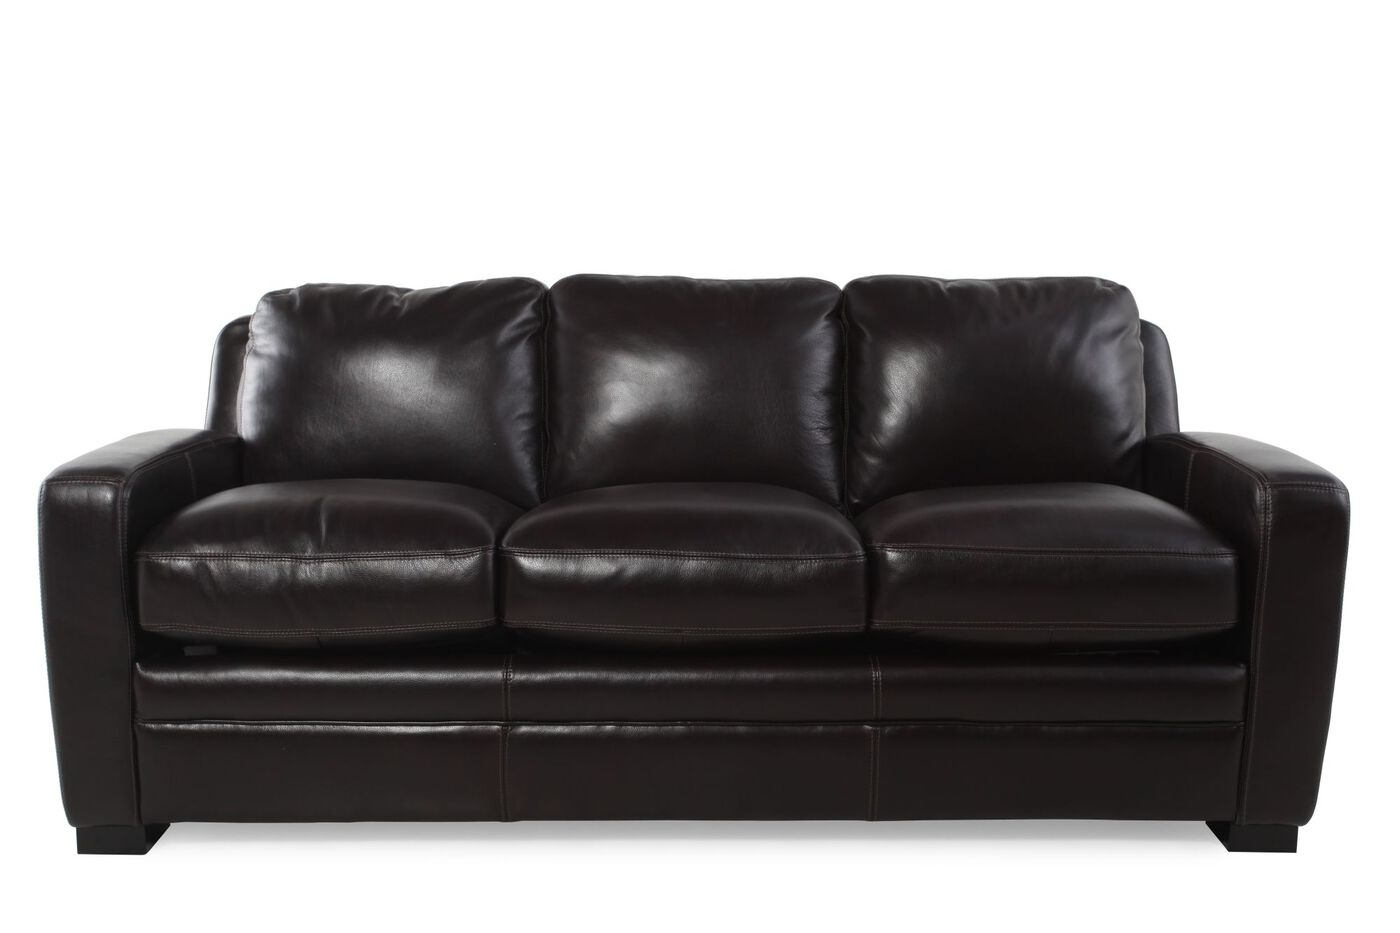 leather queen sleeper sofa customize and personalize calgary queen leather sofa by savvy thesofa. Black Bedroom Furniture Sets. Home Design Ideas